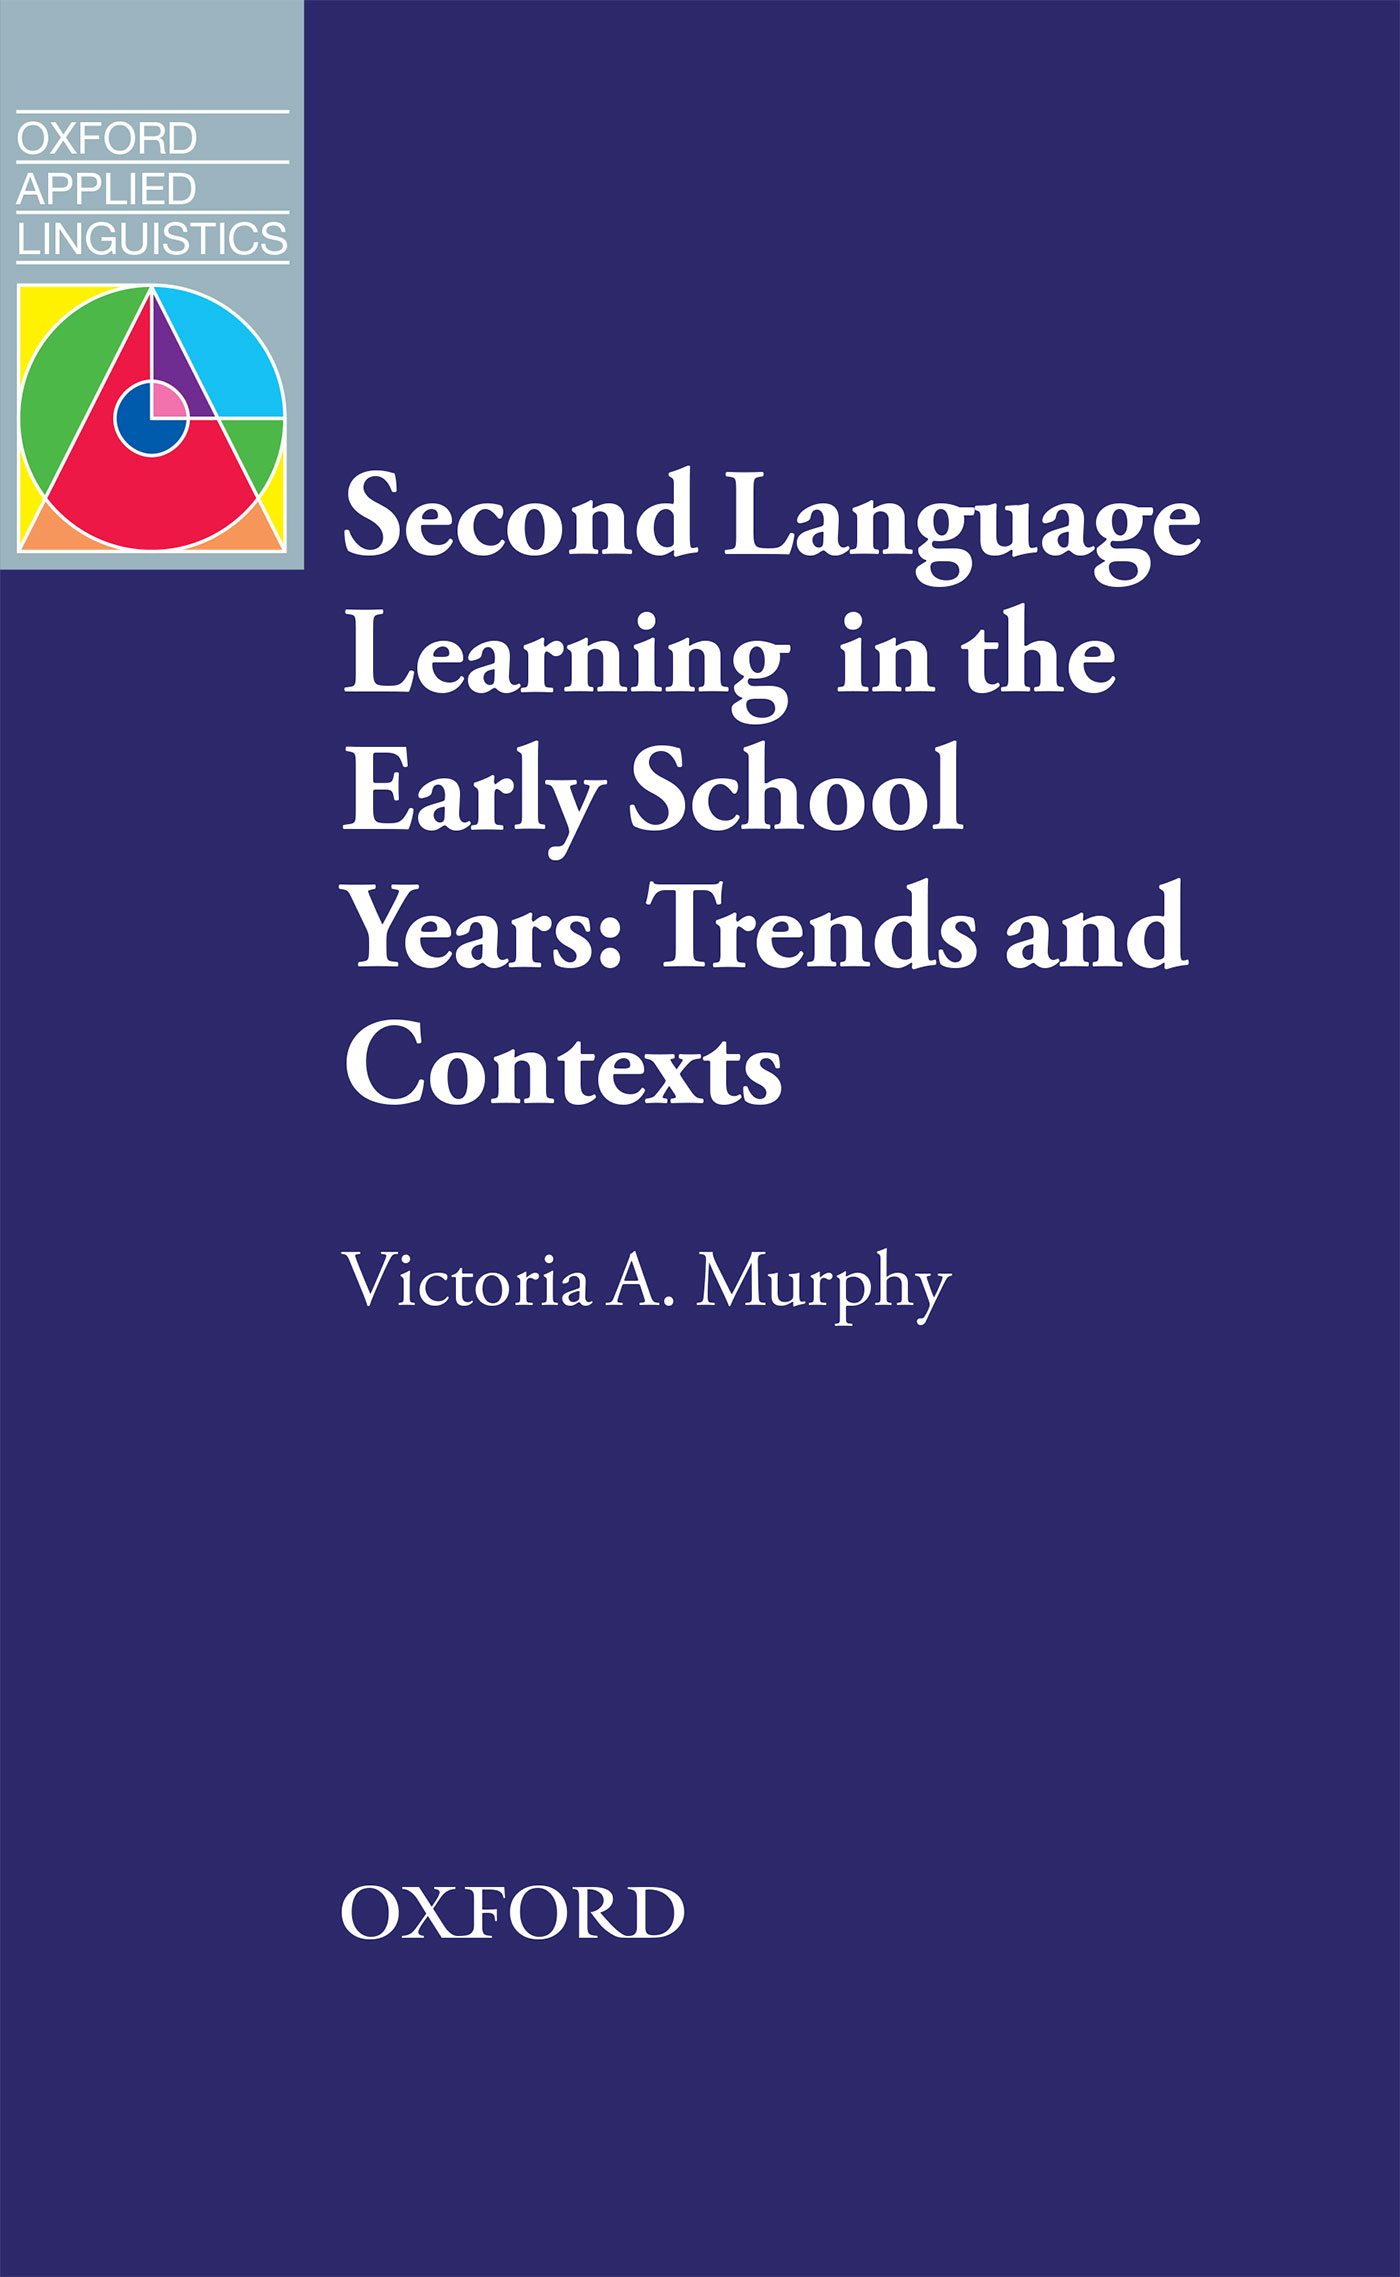 Victoria A. Murphy Second Language Learning in the Early School Years: Trends and Contexts ламинат tatami art parquet 806х403х10 мм класс 33 р8230 6